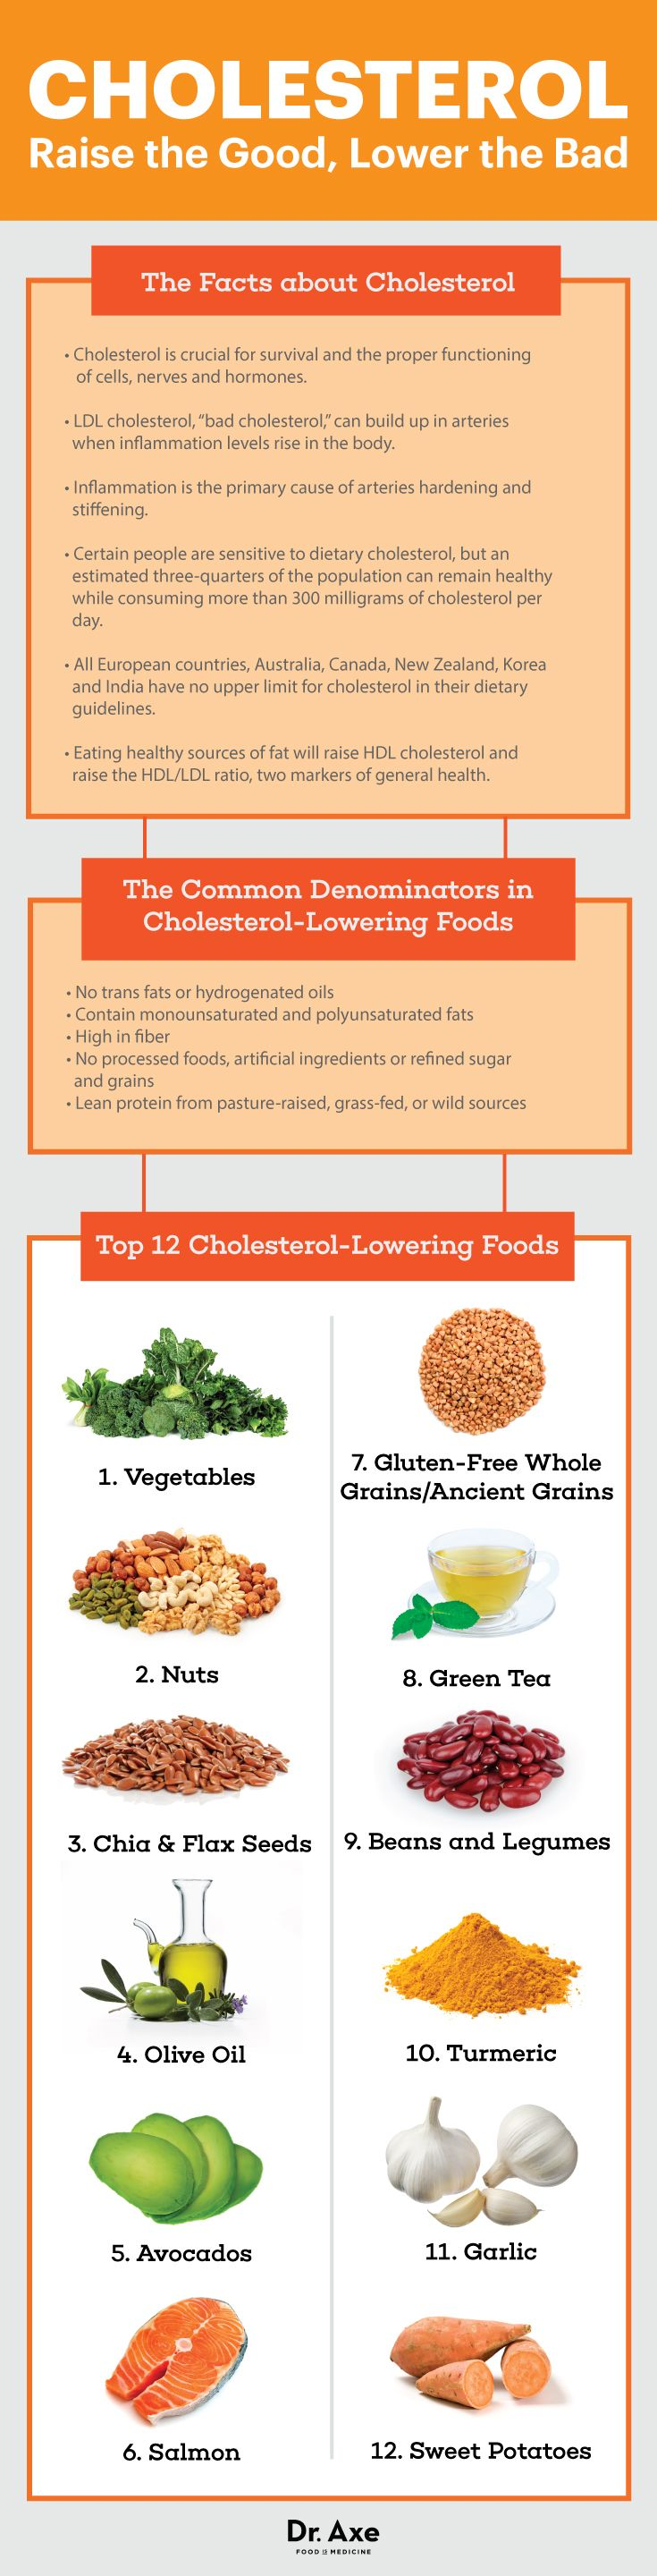 Guide to cholesterol-lowering foods - Dr. Axe http://www.draxe.com #health #holistic #natural